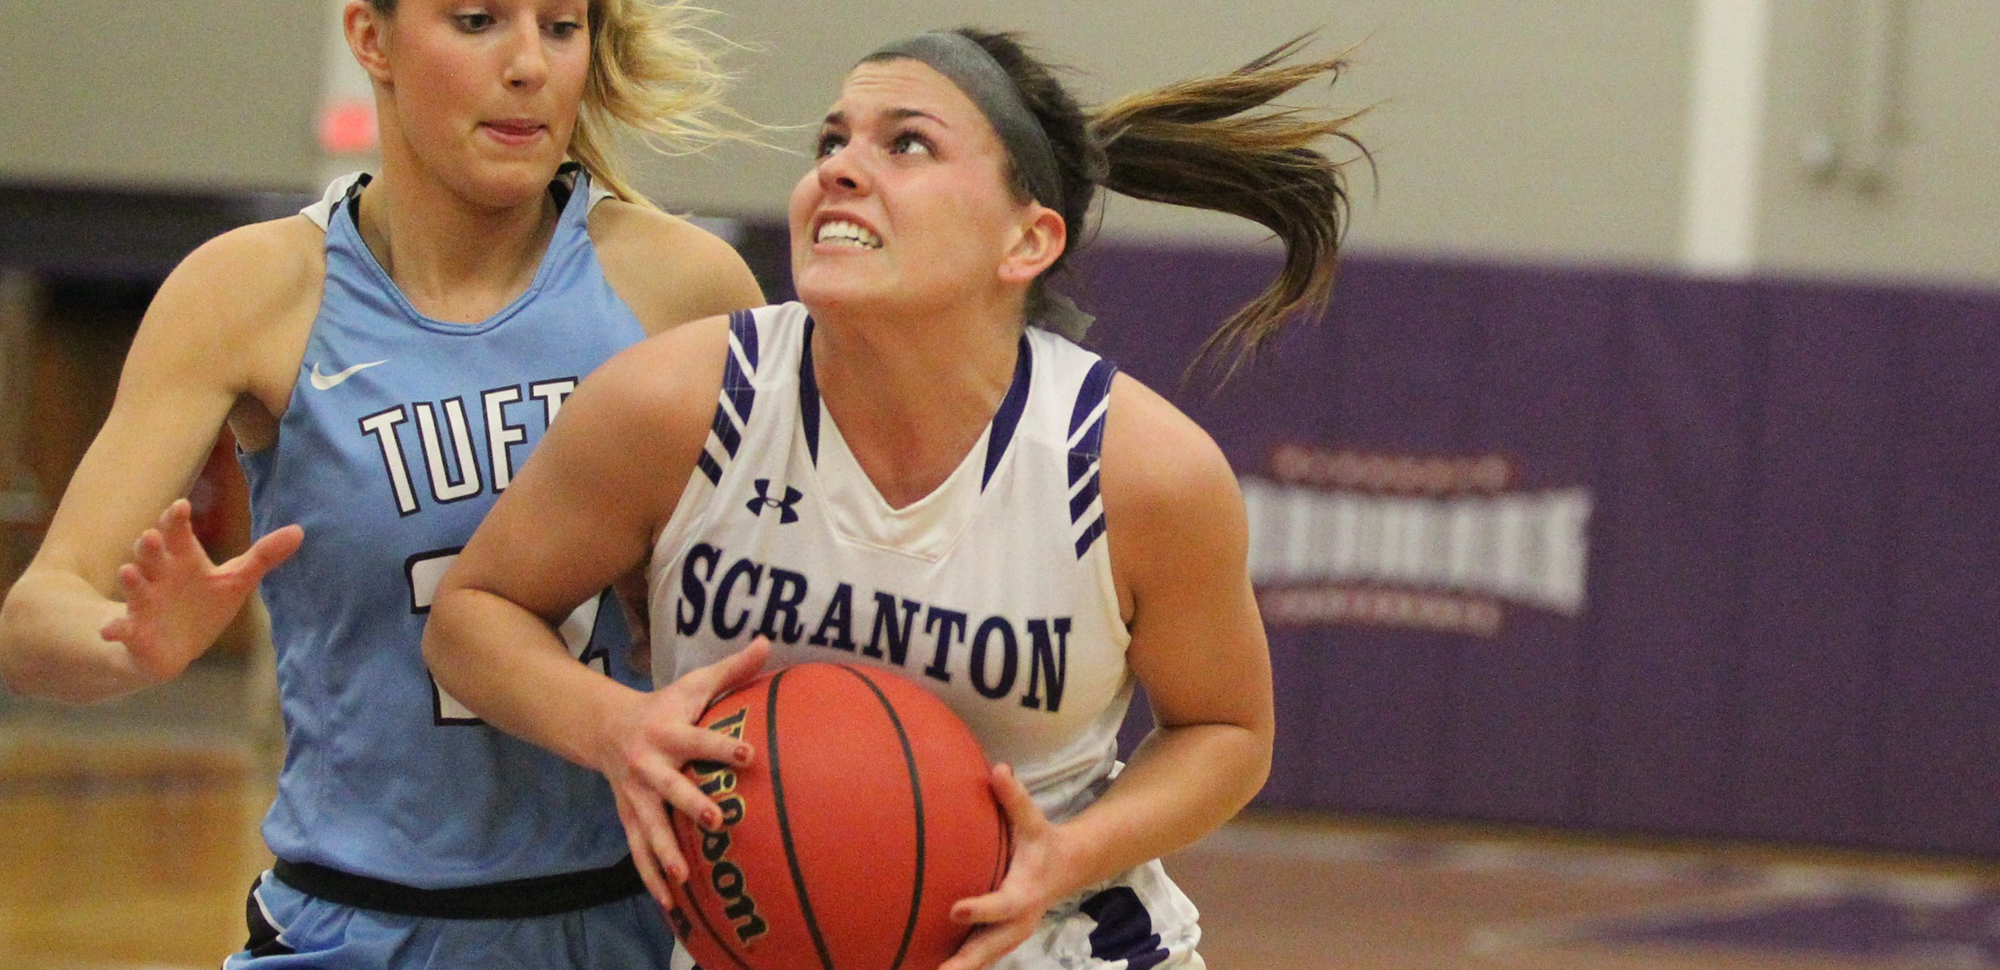 Junior Emily Sheehan of the women's basketball team was named The University of Scranton Athlete of the Week for the first time in her career on Monday.